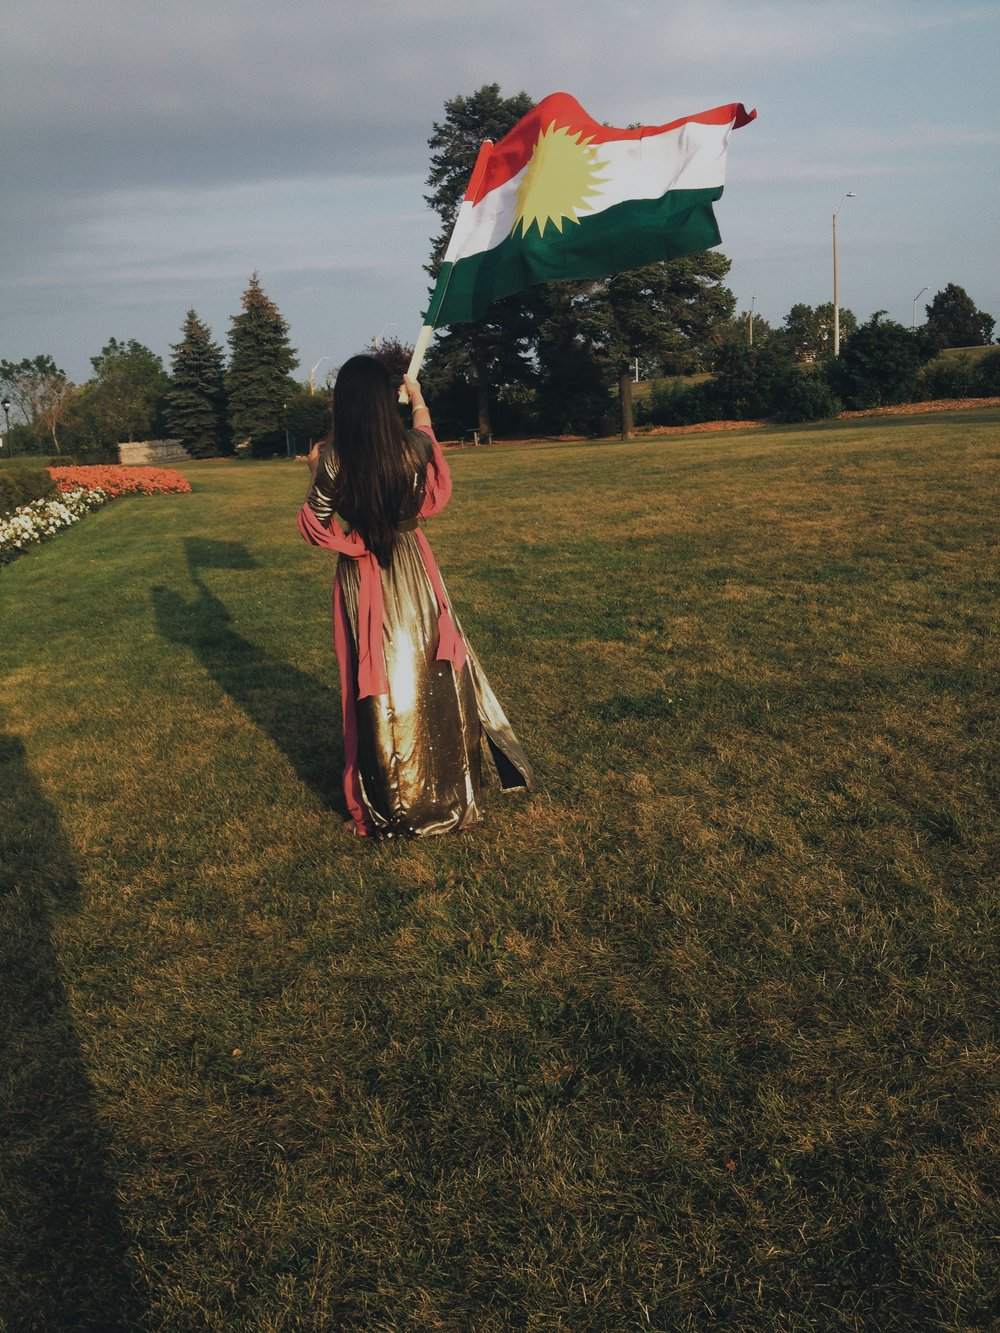 Me with Ala Kurdistanê (The Kurdistan Flag)